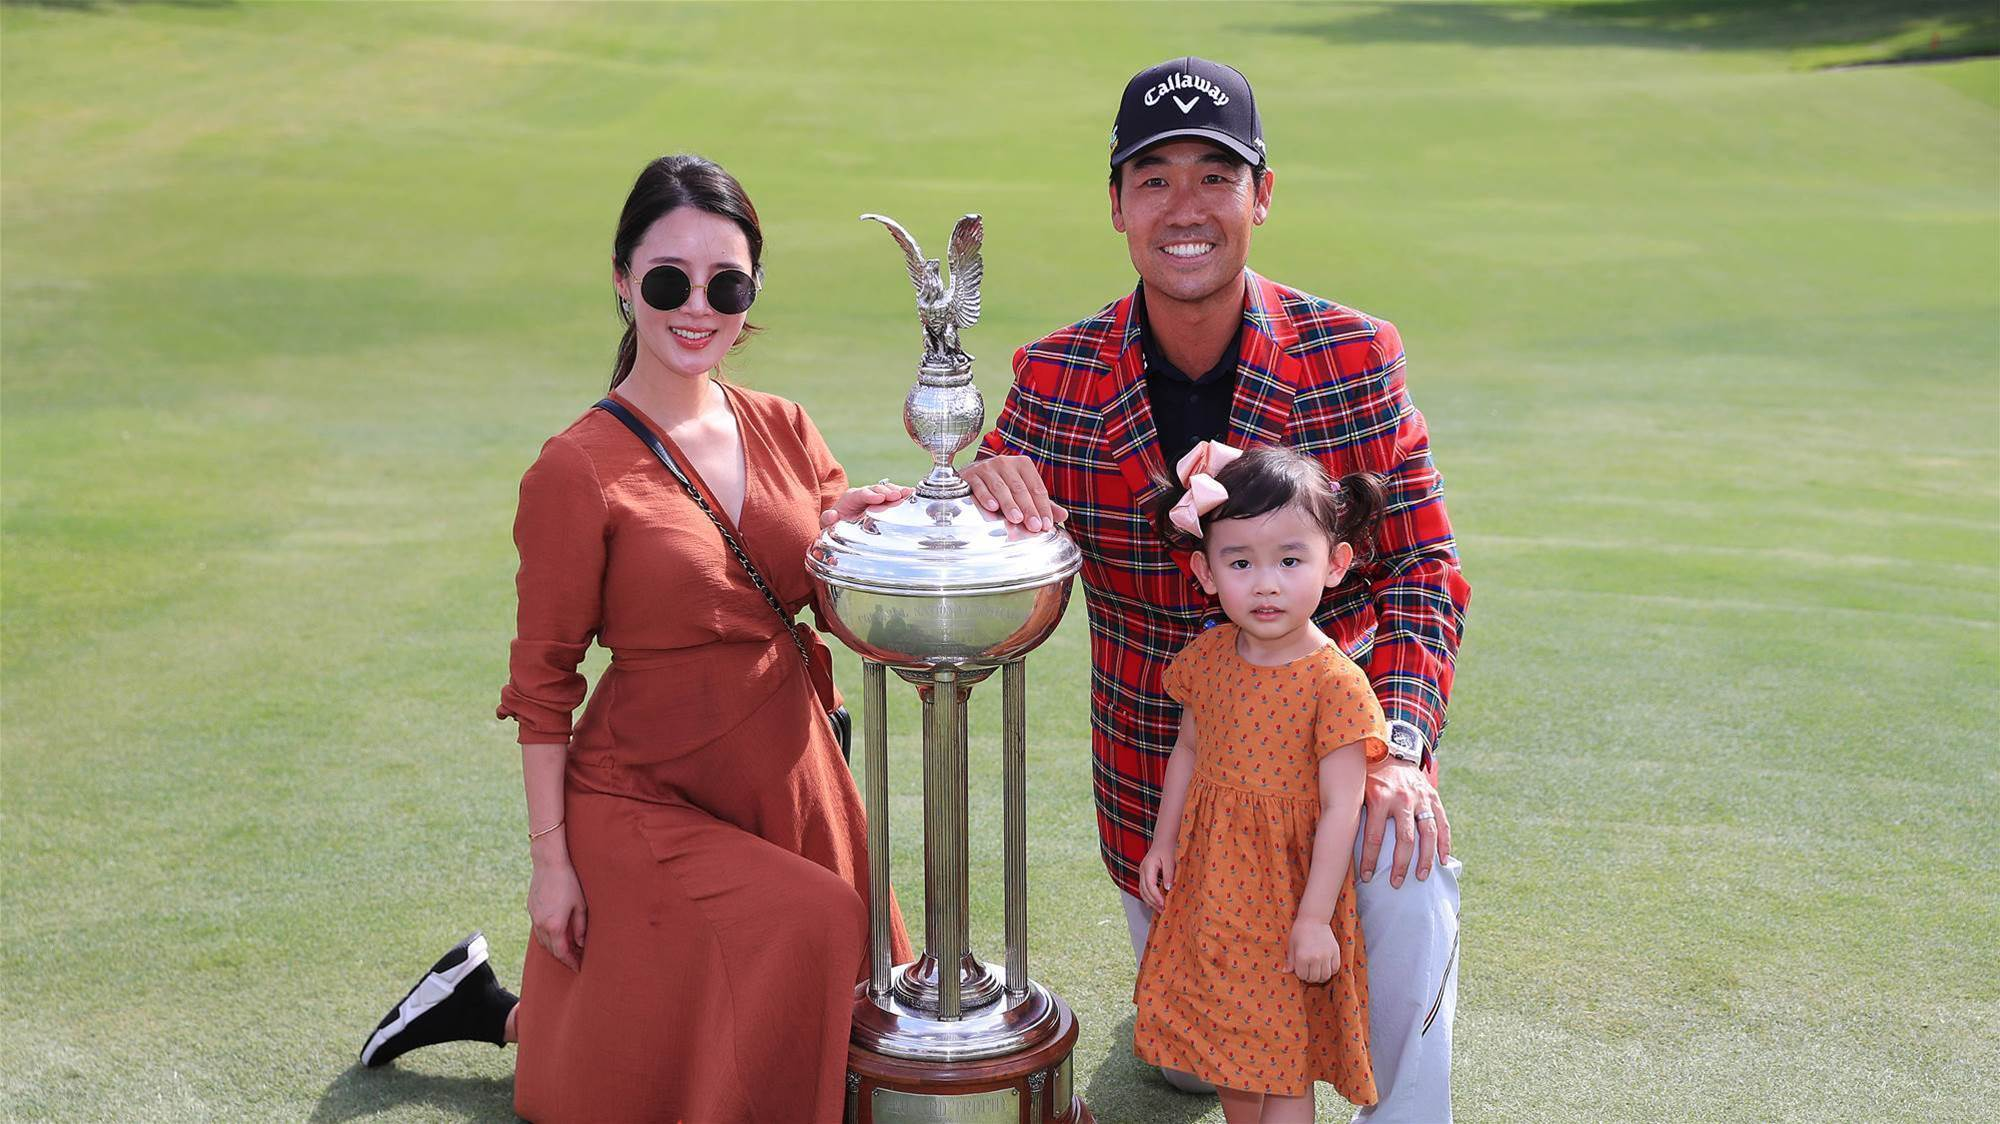 Kevin Na cruises to victory at Colonial